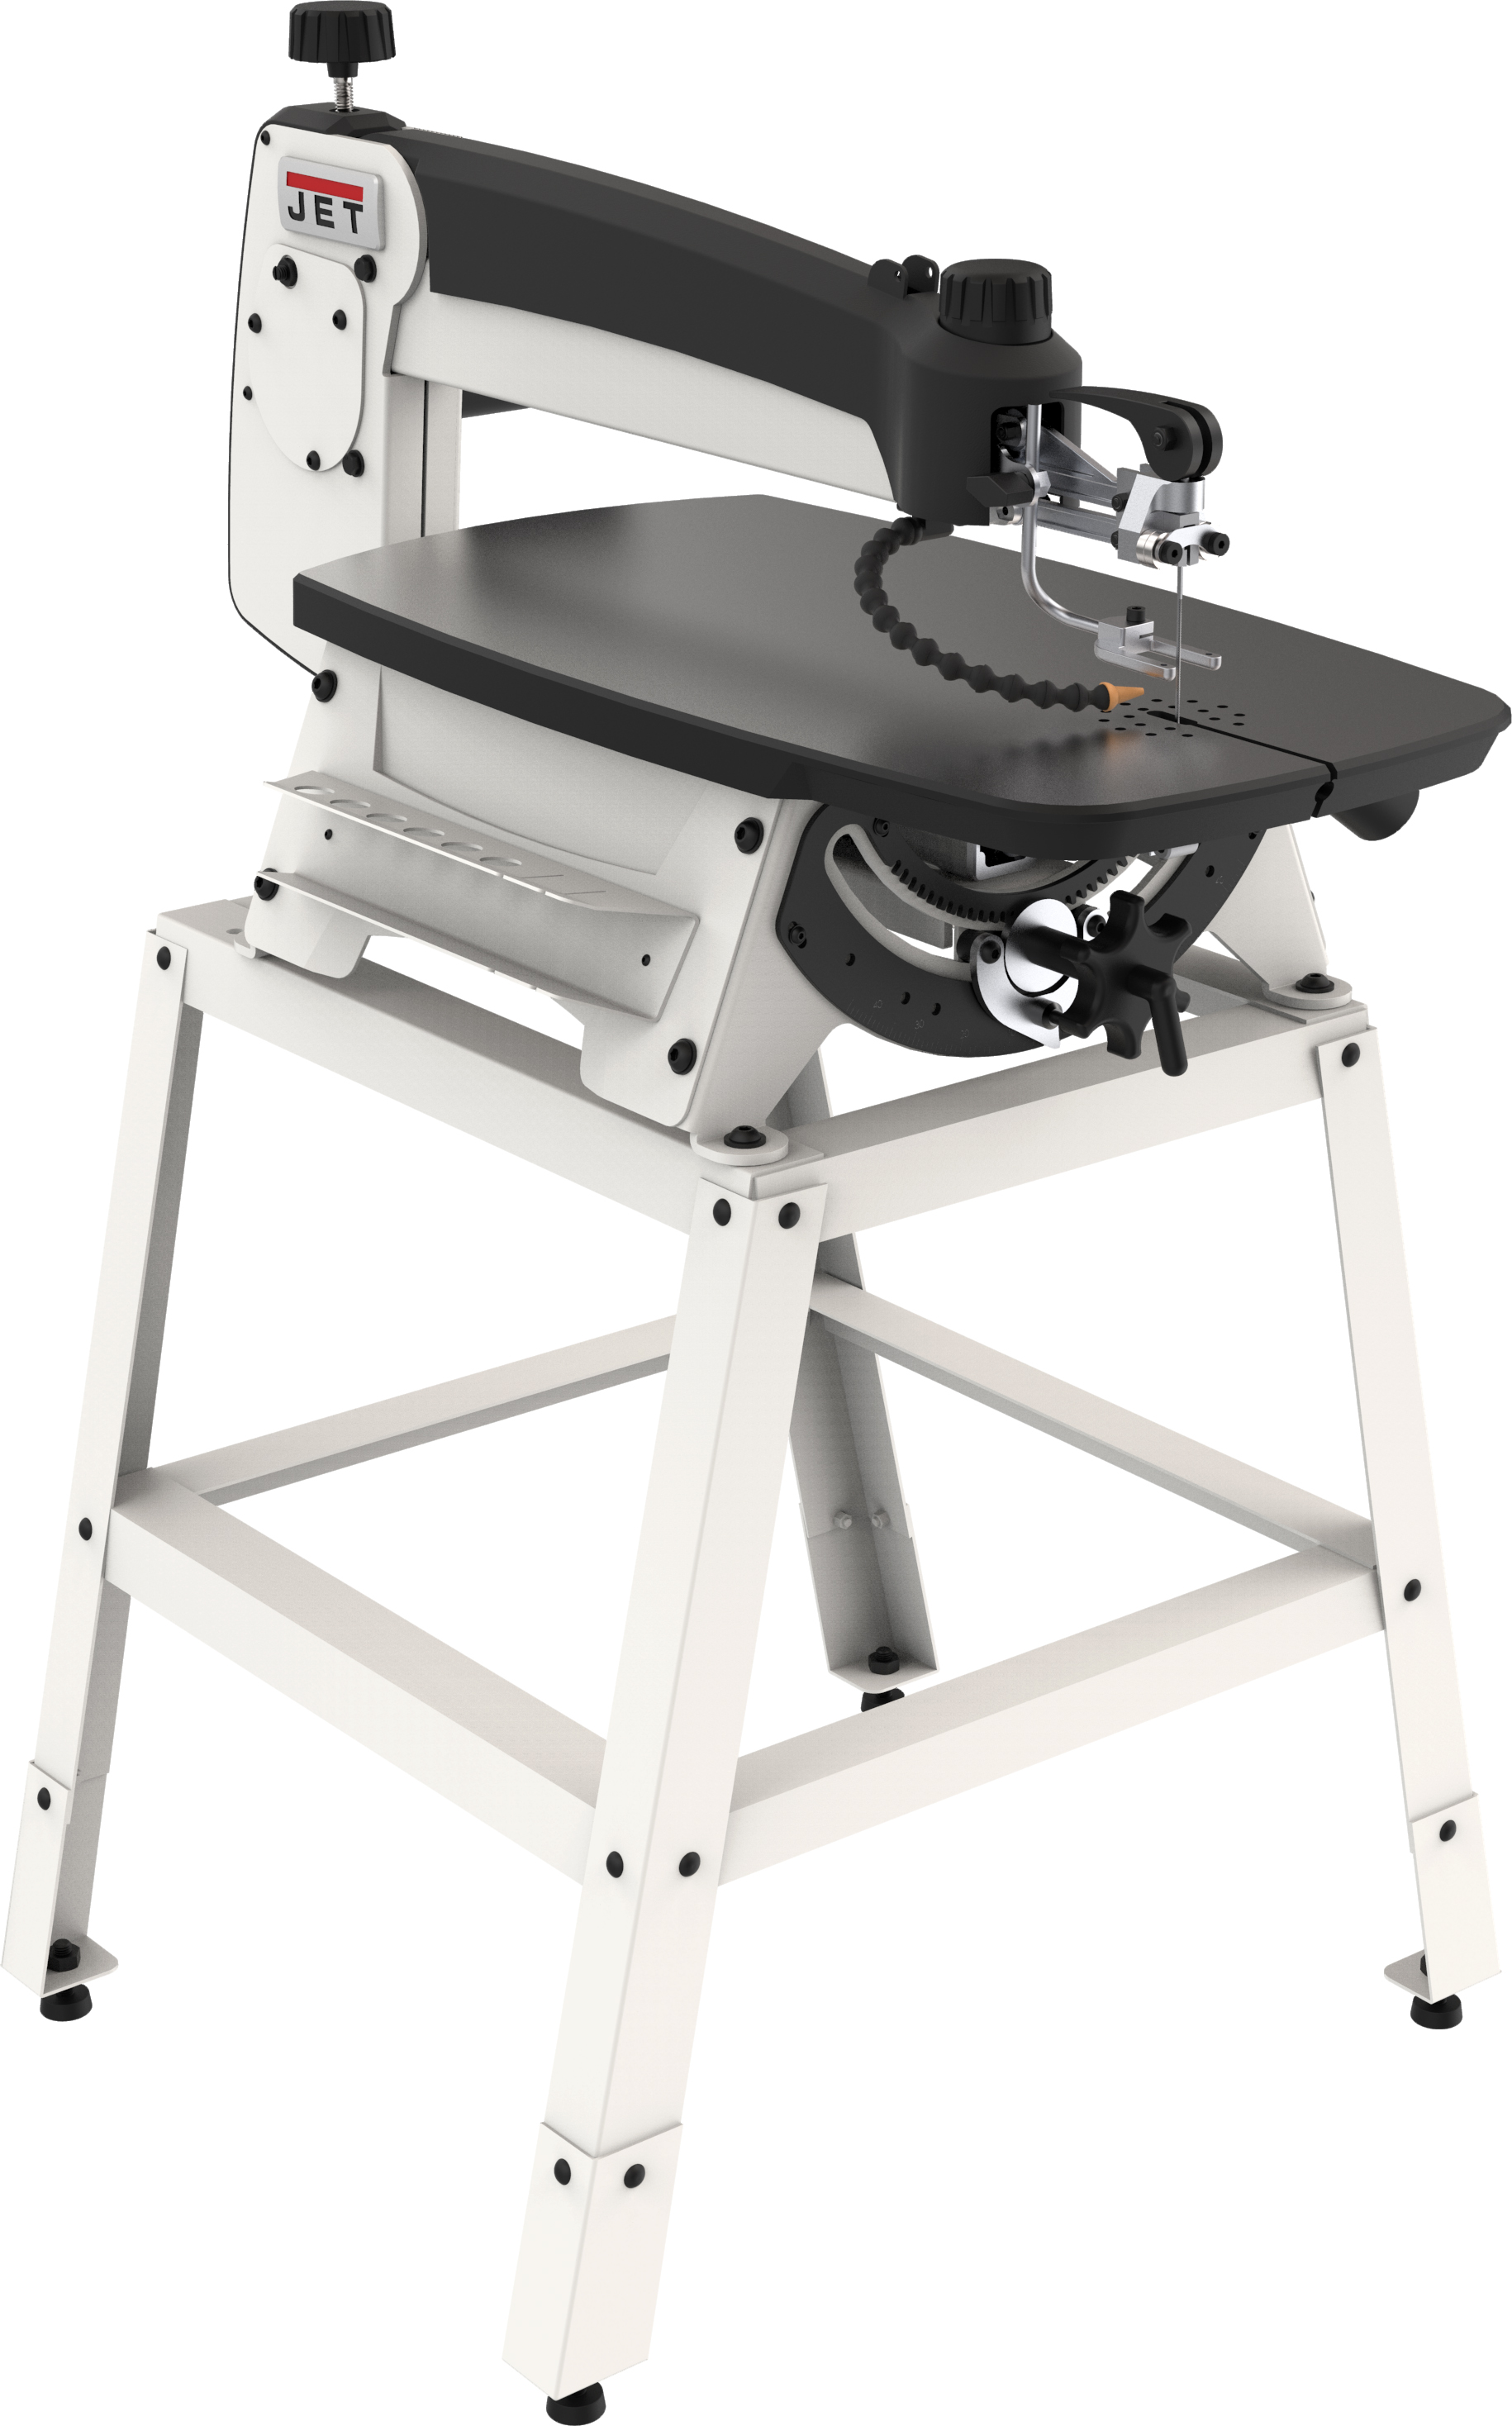 New jet jwss 22 22 scroll saw with quick and easy blade changes jet 727200k 22in scroll saw keyboard keysfo Gallery